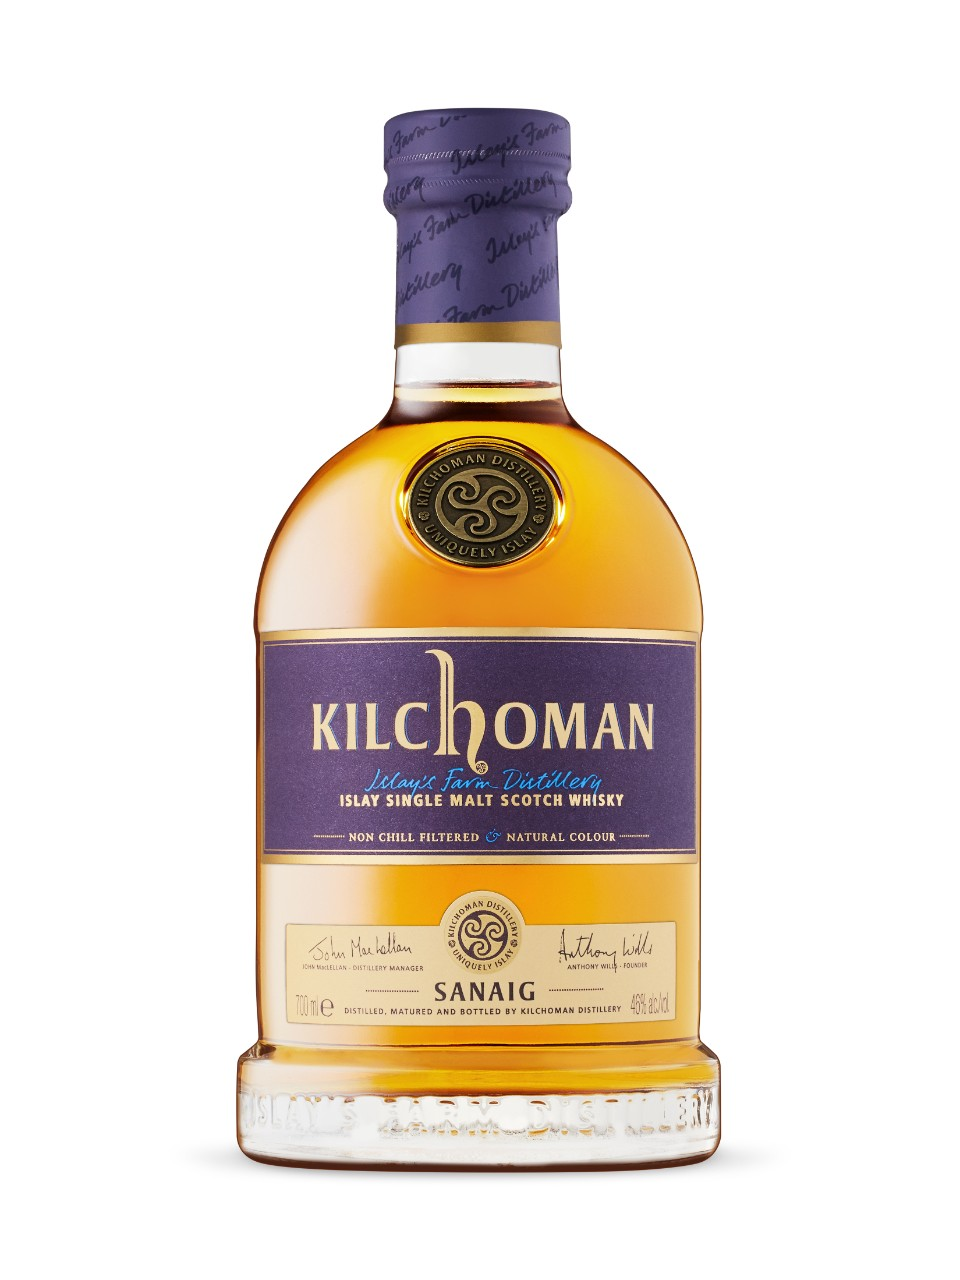 Image for Kilchoman Sanaig Islay Single Malt Scotch Whisky from LCBO